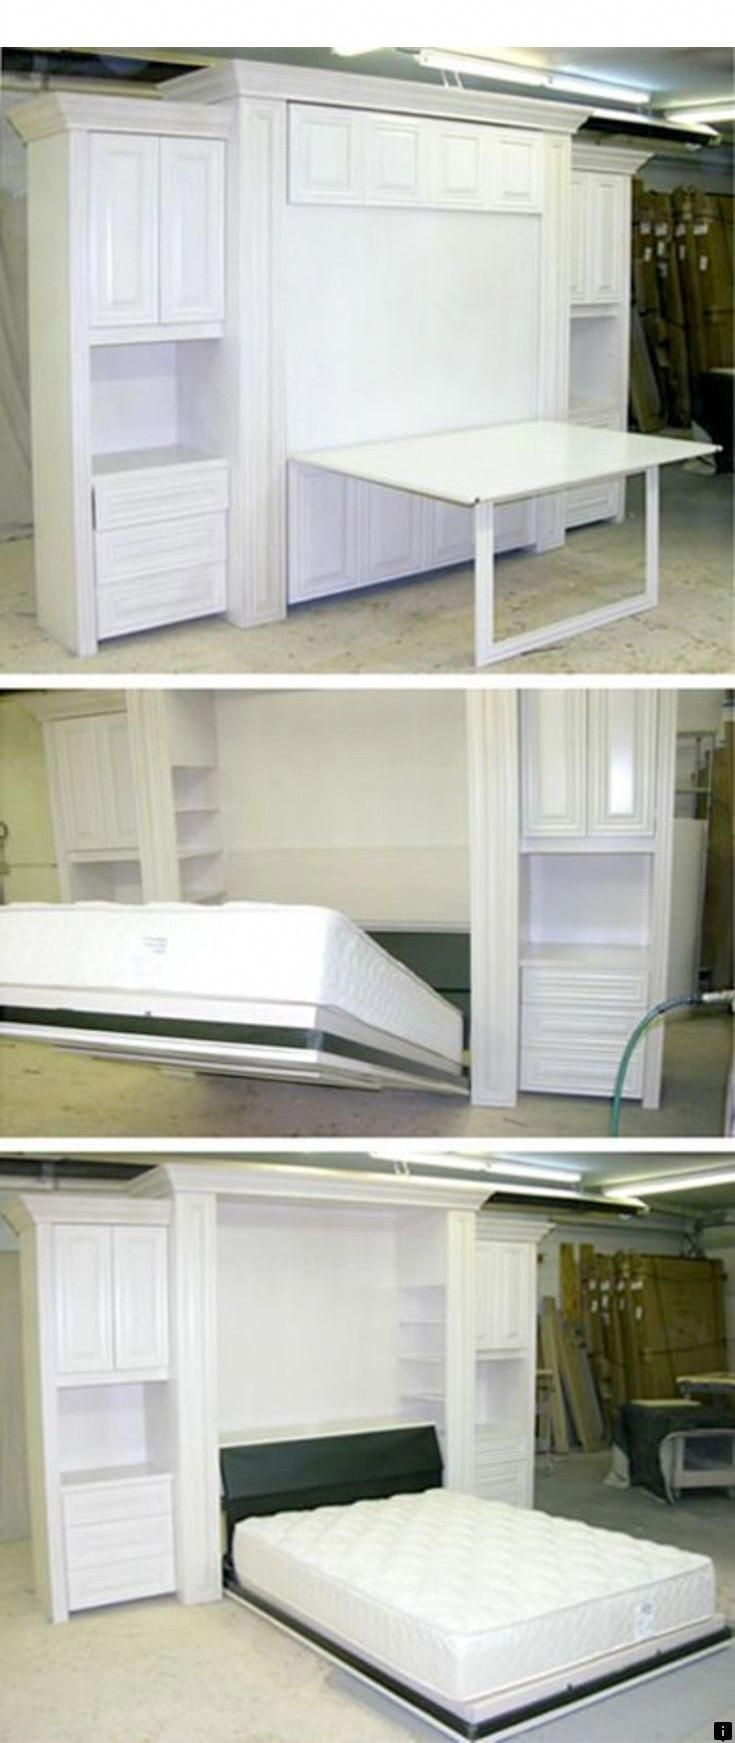 Find more information on murphy beds for sale near me